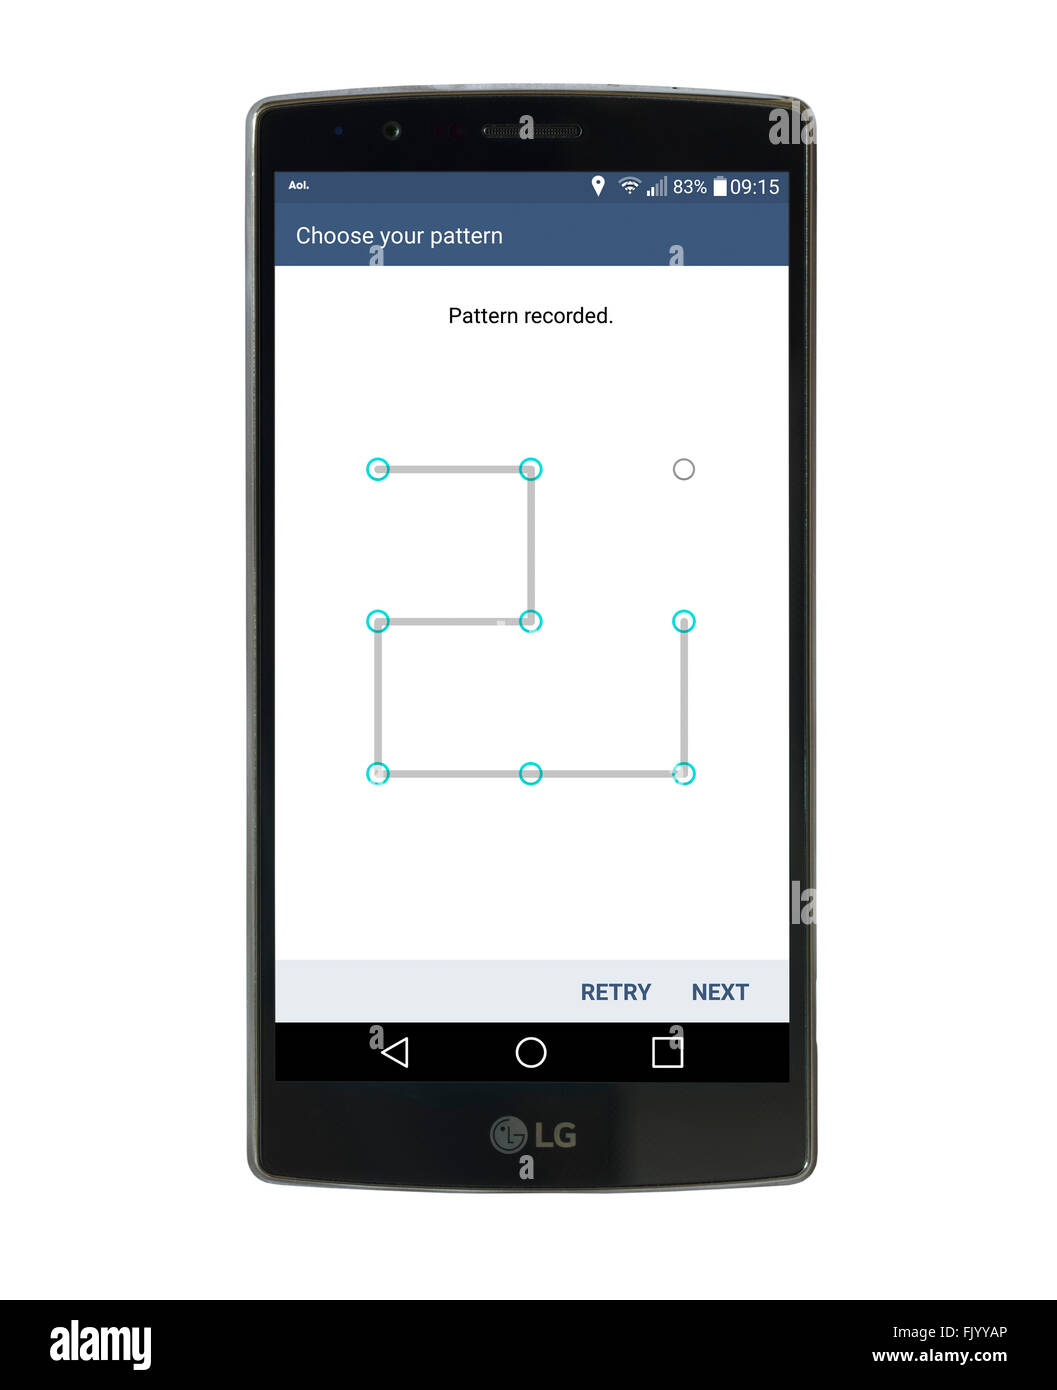 Using pattern recognition to lock the screen on an LG G4 5.5 inch Android smartphone running Android 6 Marshmallow - Stock Image